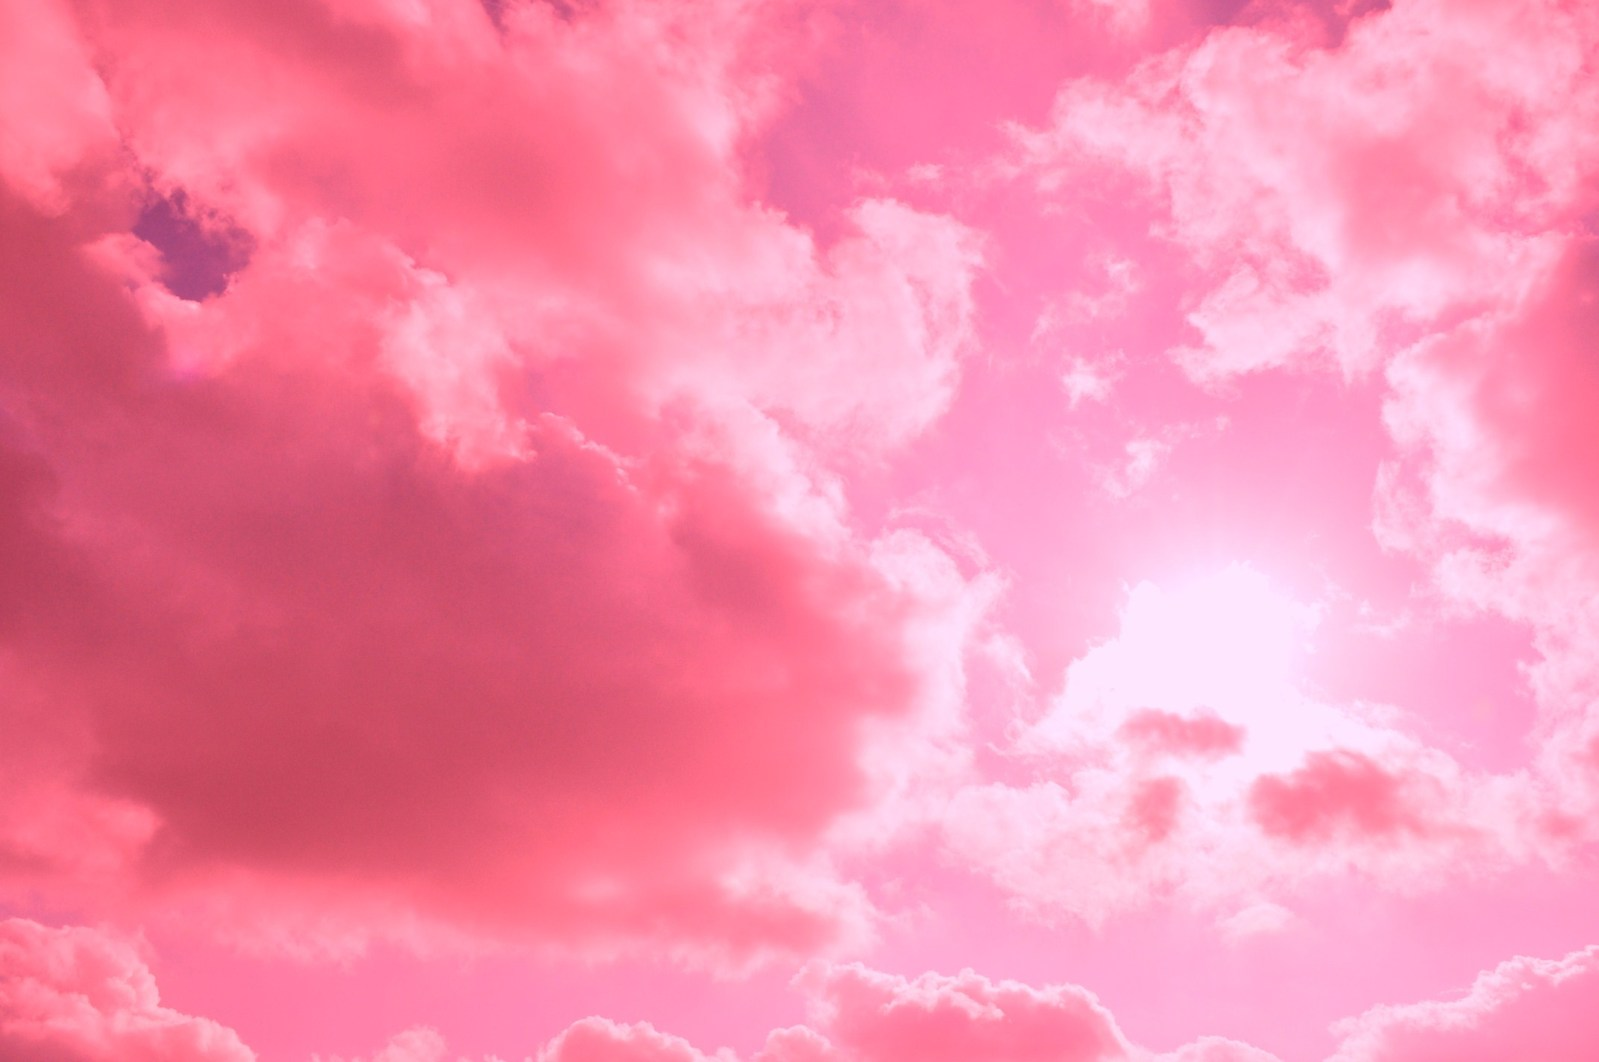 Pink Aesthetic Cloud Background 879802 Hd Wallpaper